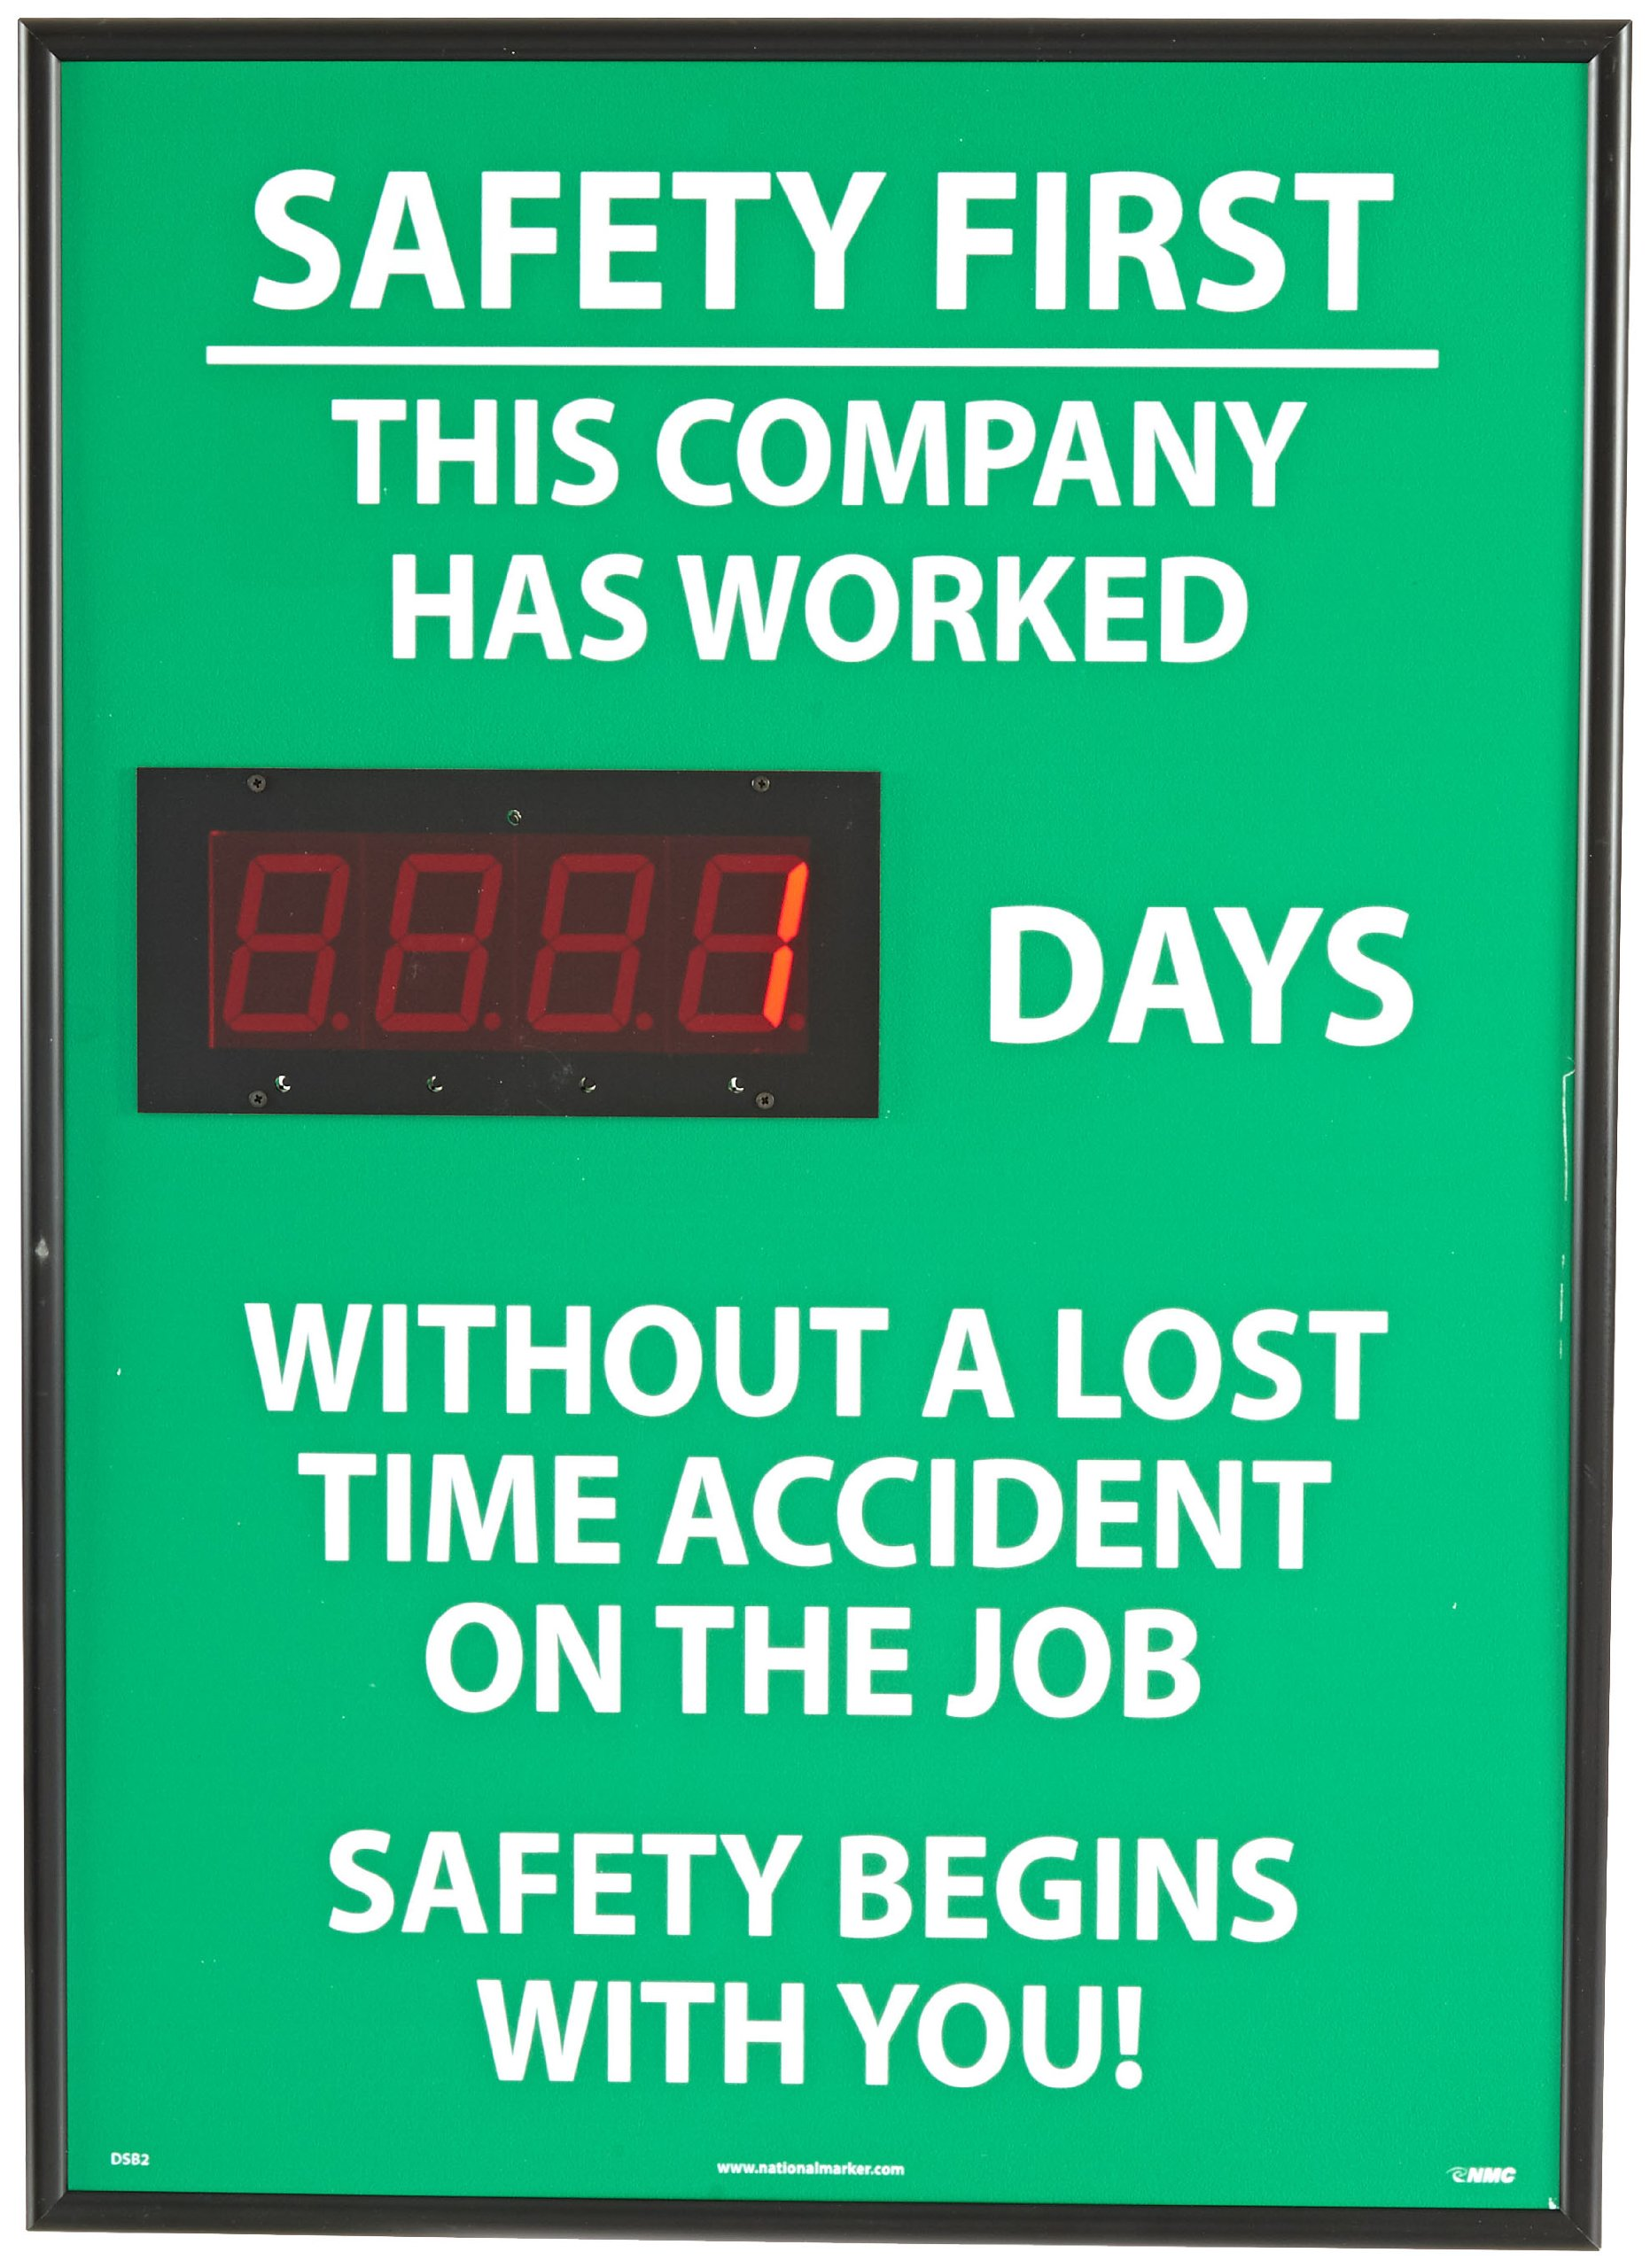 NMC DSB2 Digital Scoreboard, ''Safety First - This Company Has Worked XXXX Days Without A Lost Time Accident On The Job...'' 20'' Width X 28'' Height, Rigid Plastic, White On Green